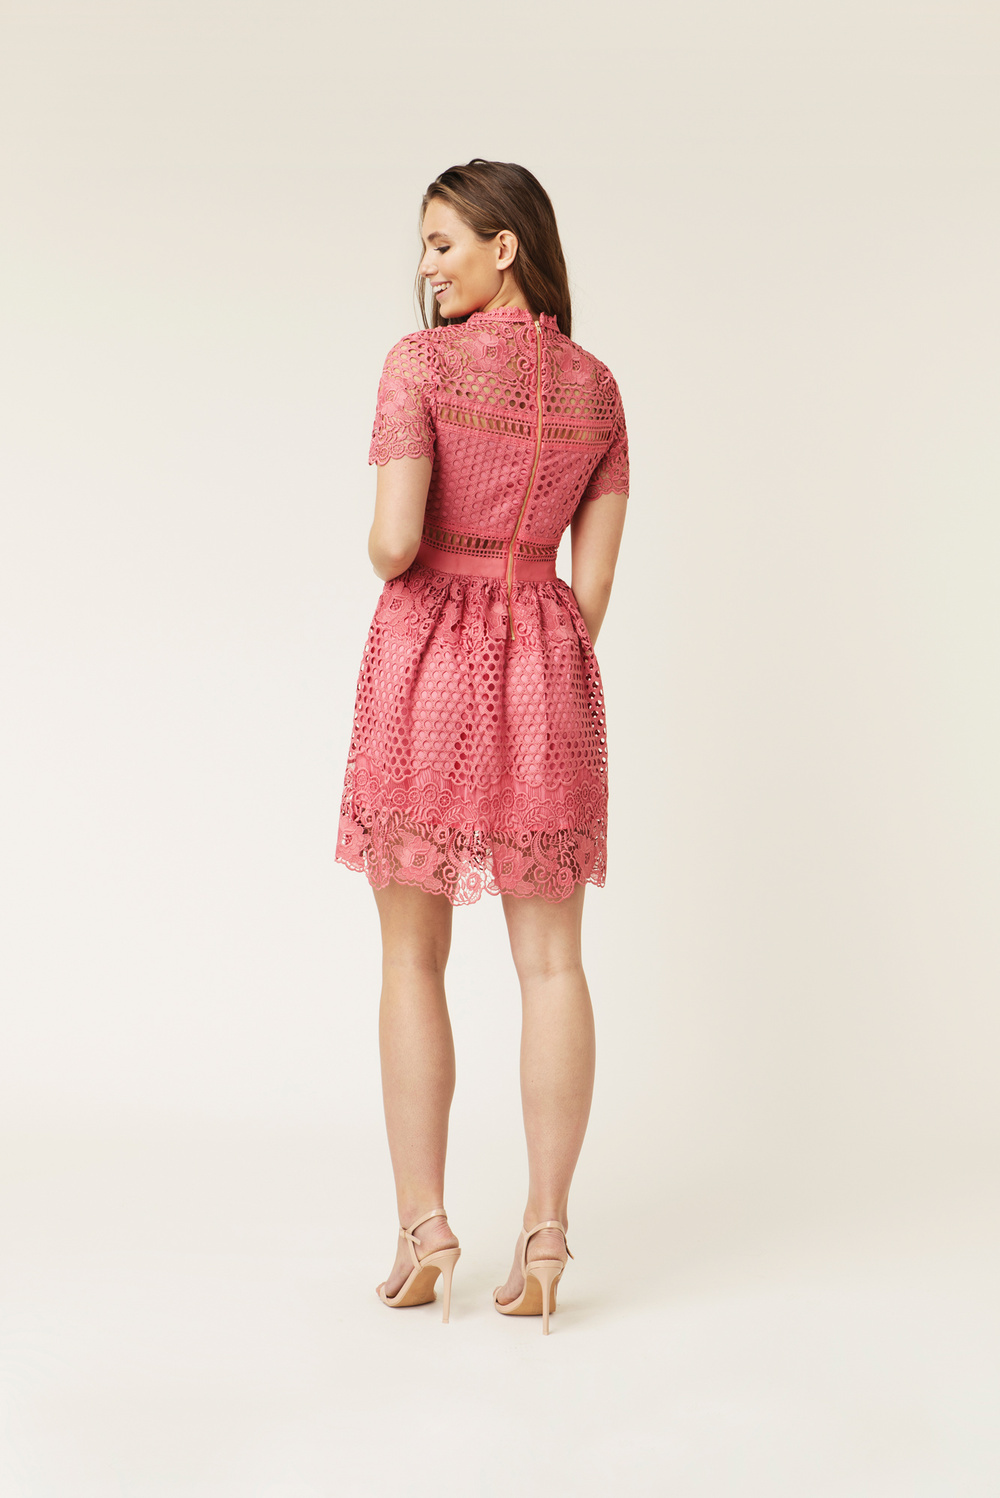 65bc6a59bf Product Thumbnail of Flower Emily dress Product Thumbnail of Flower Emily  dress